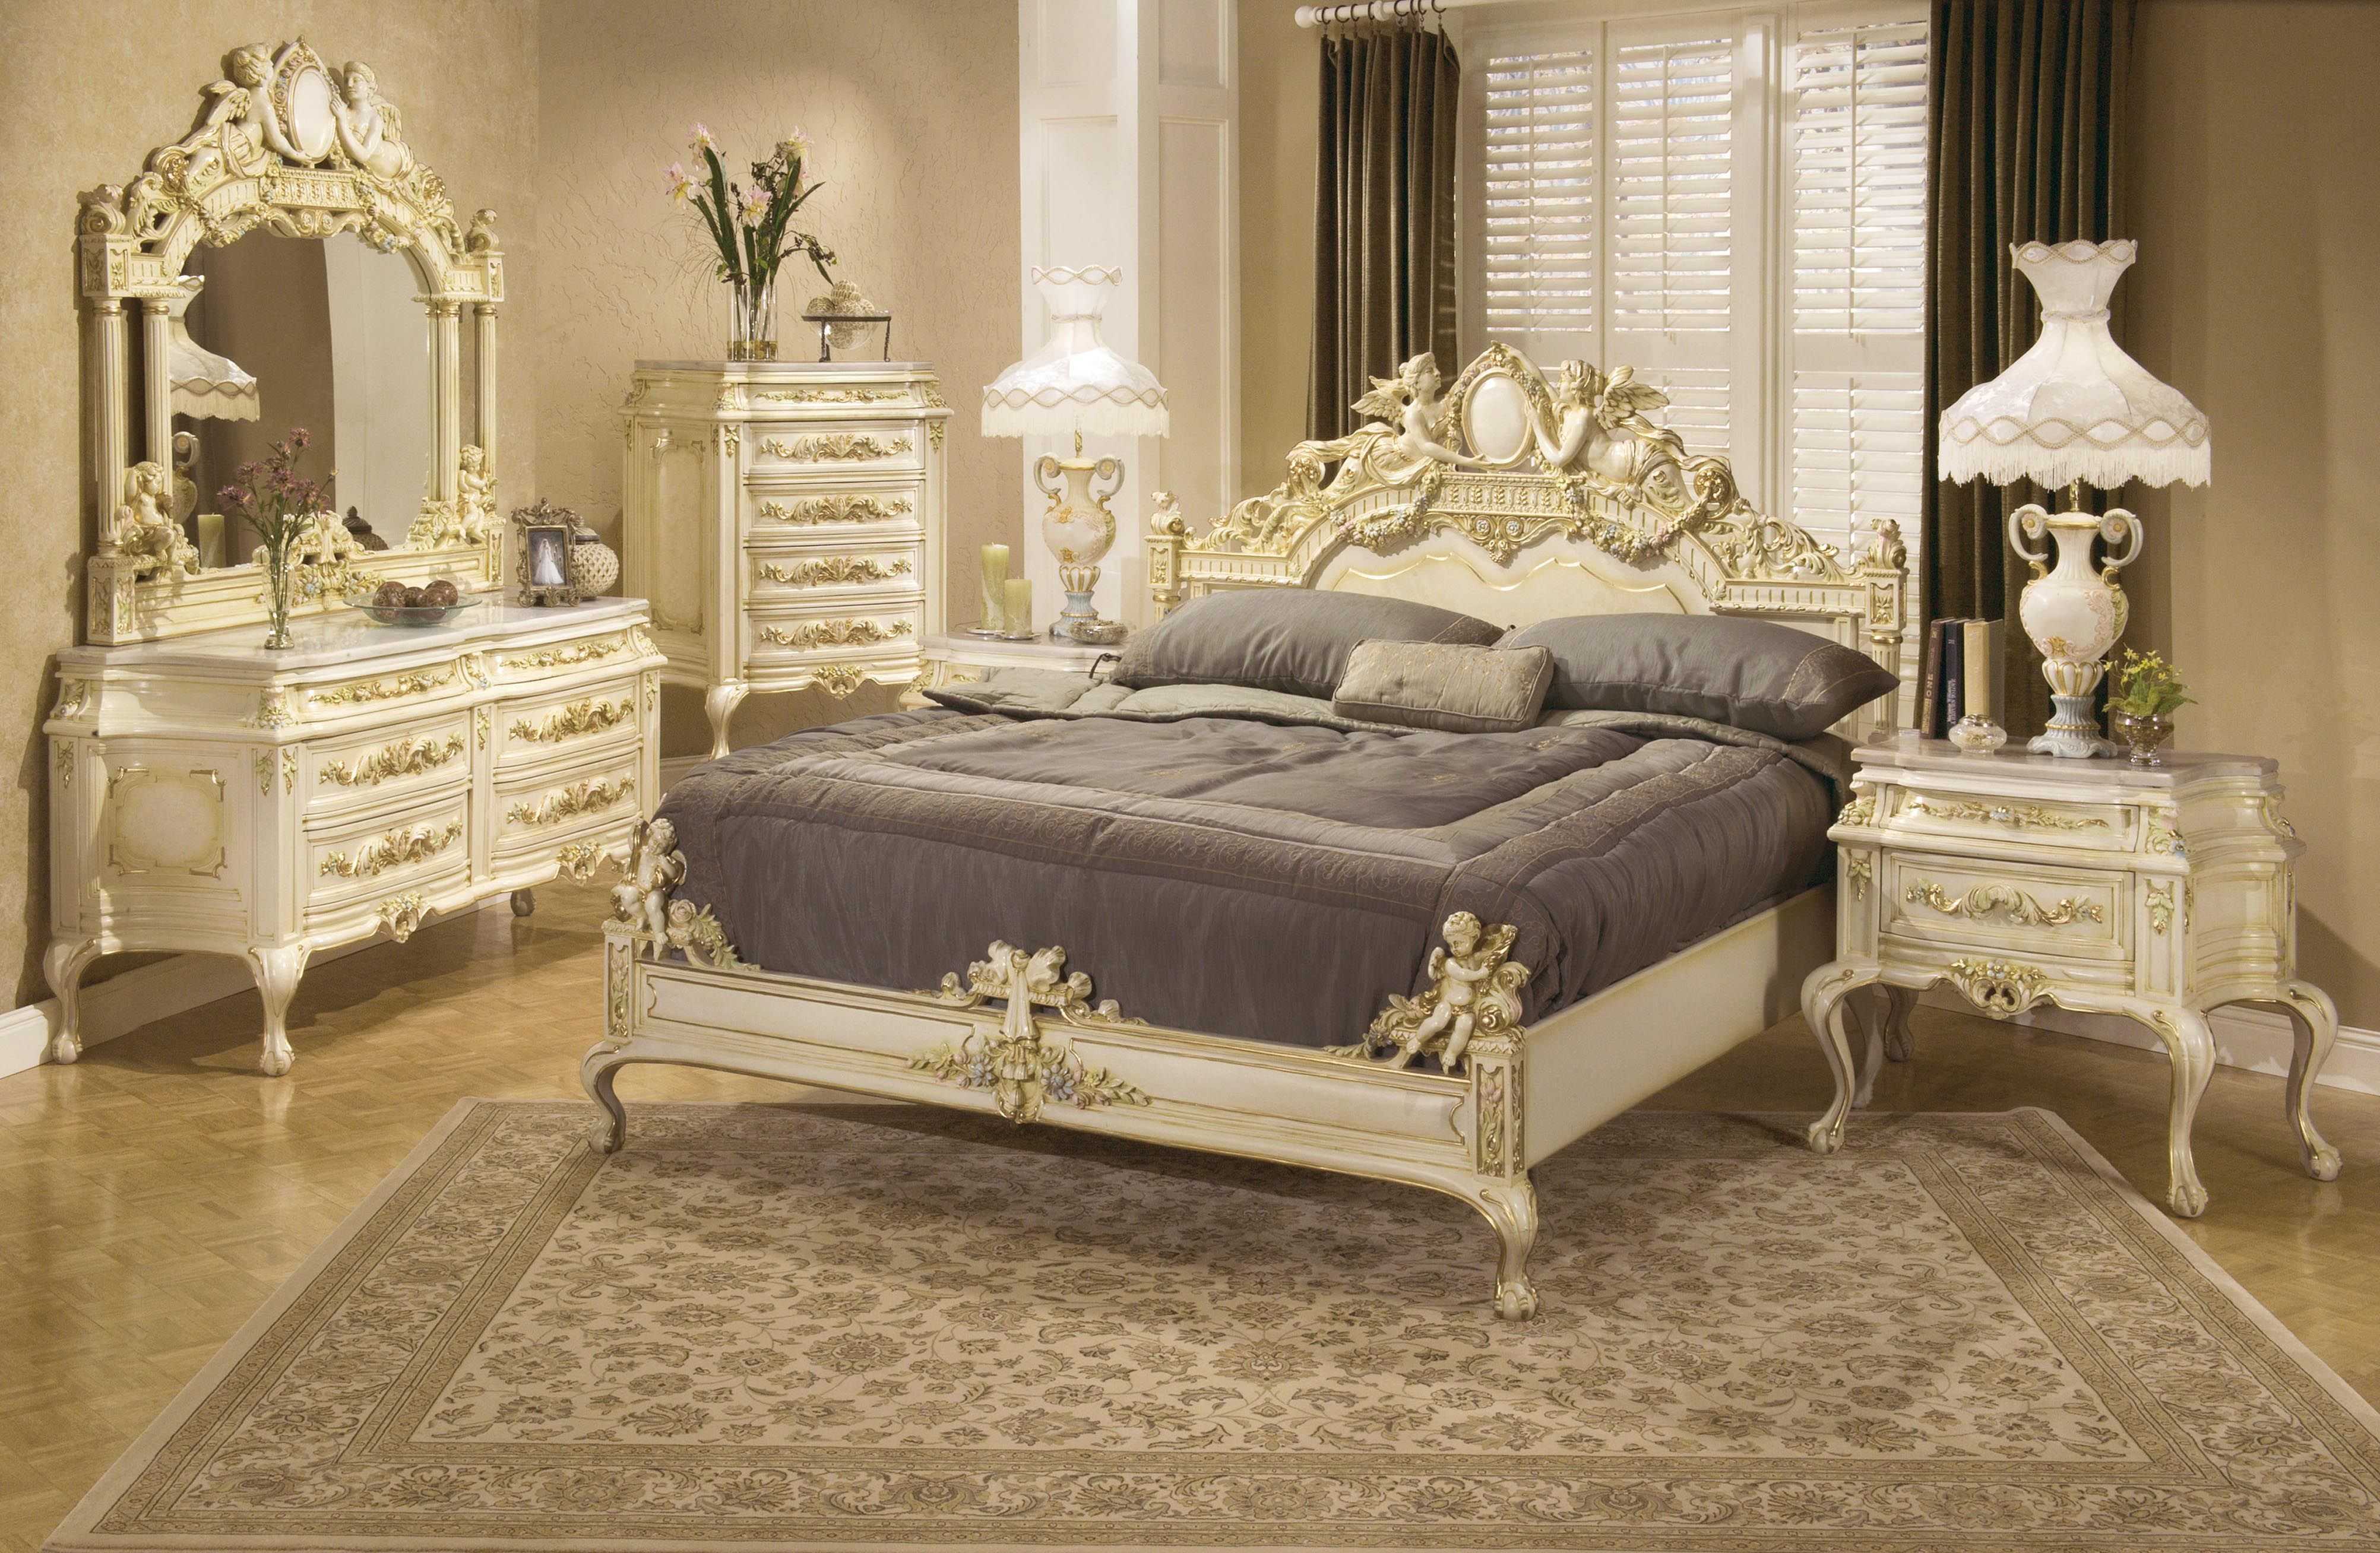 Victorian Bedroom 321 Victorian Furniture Victorian Bedroom Decor Victorian Bedroom Furniture French Bedroom Design